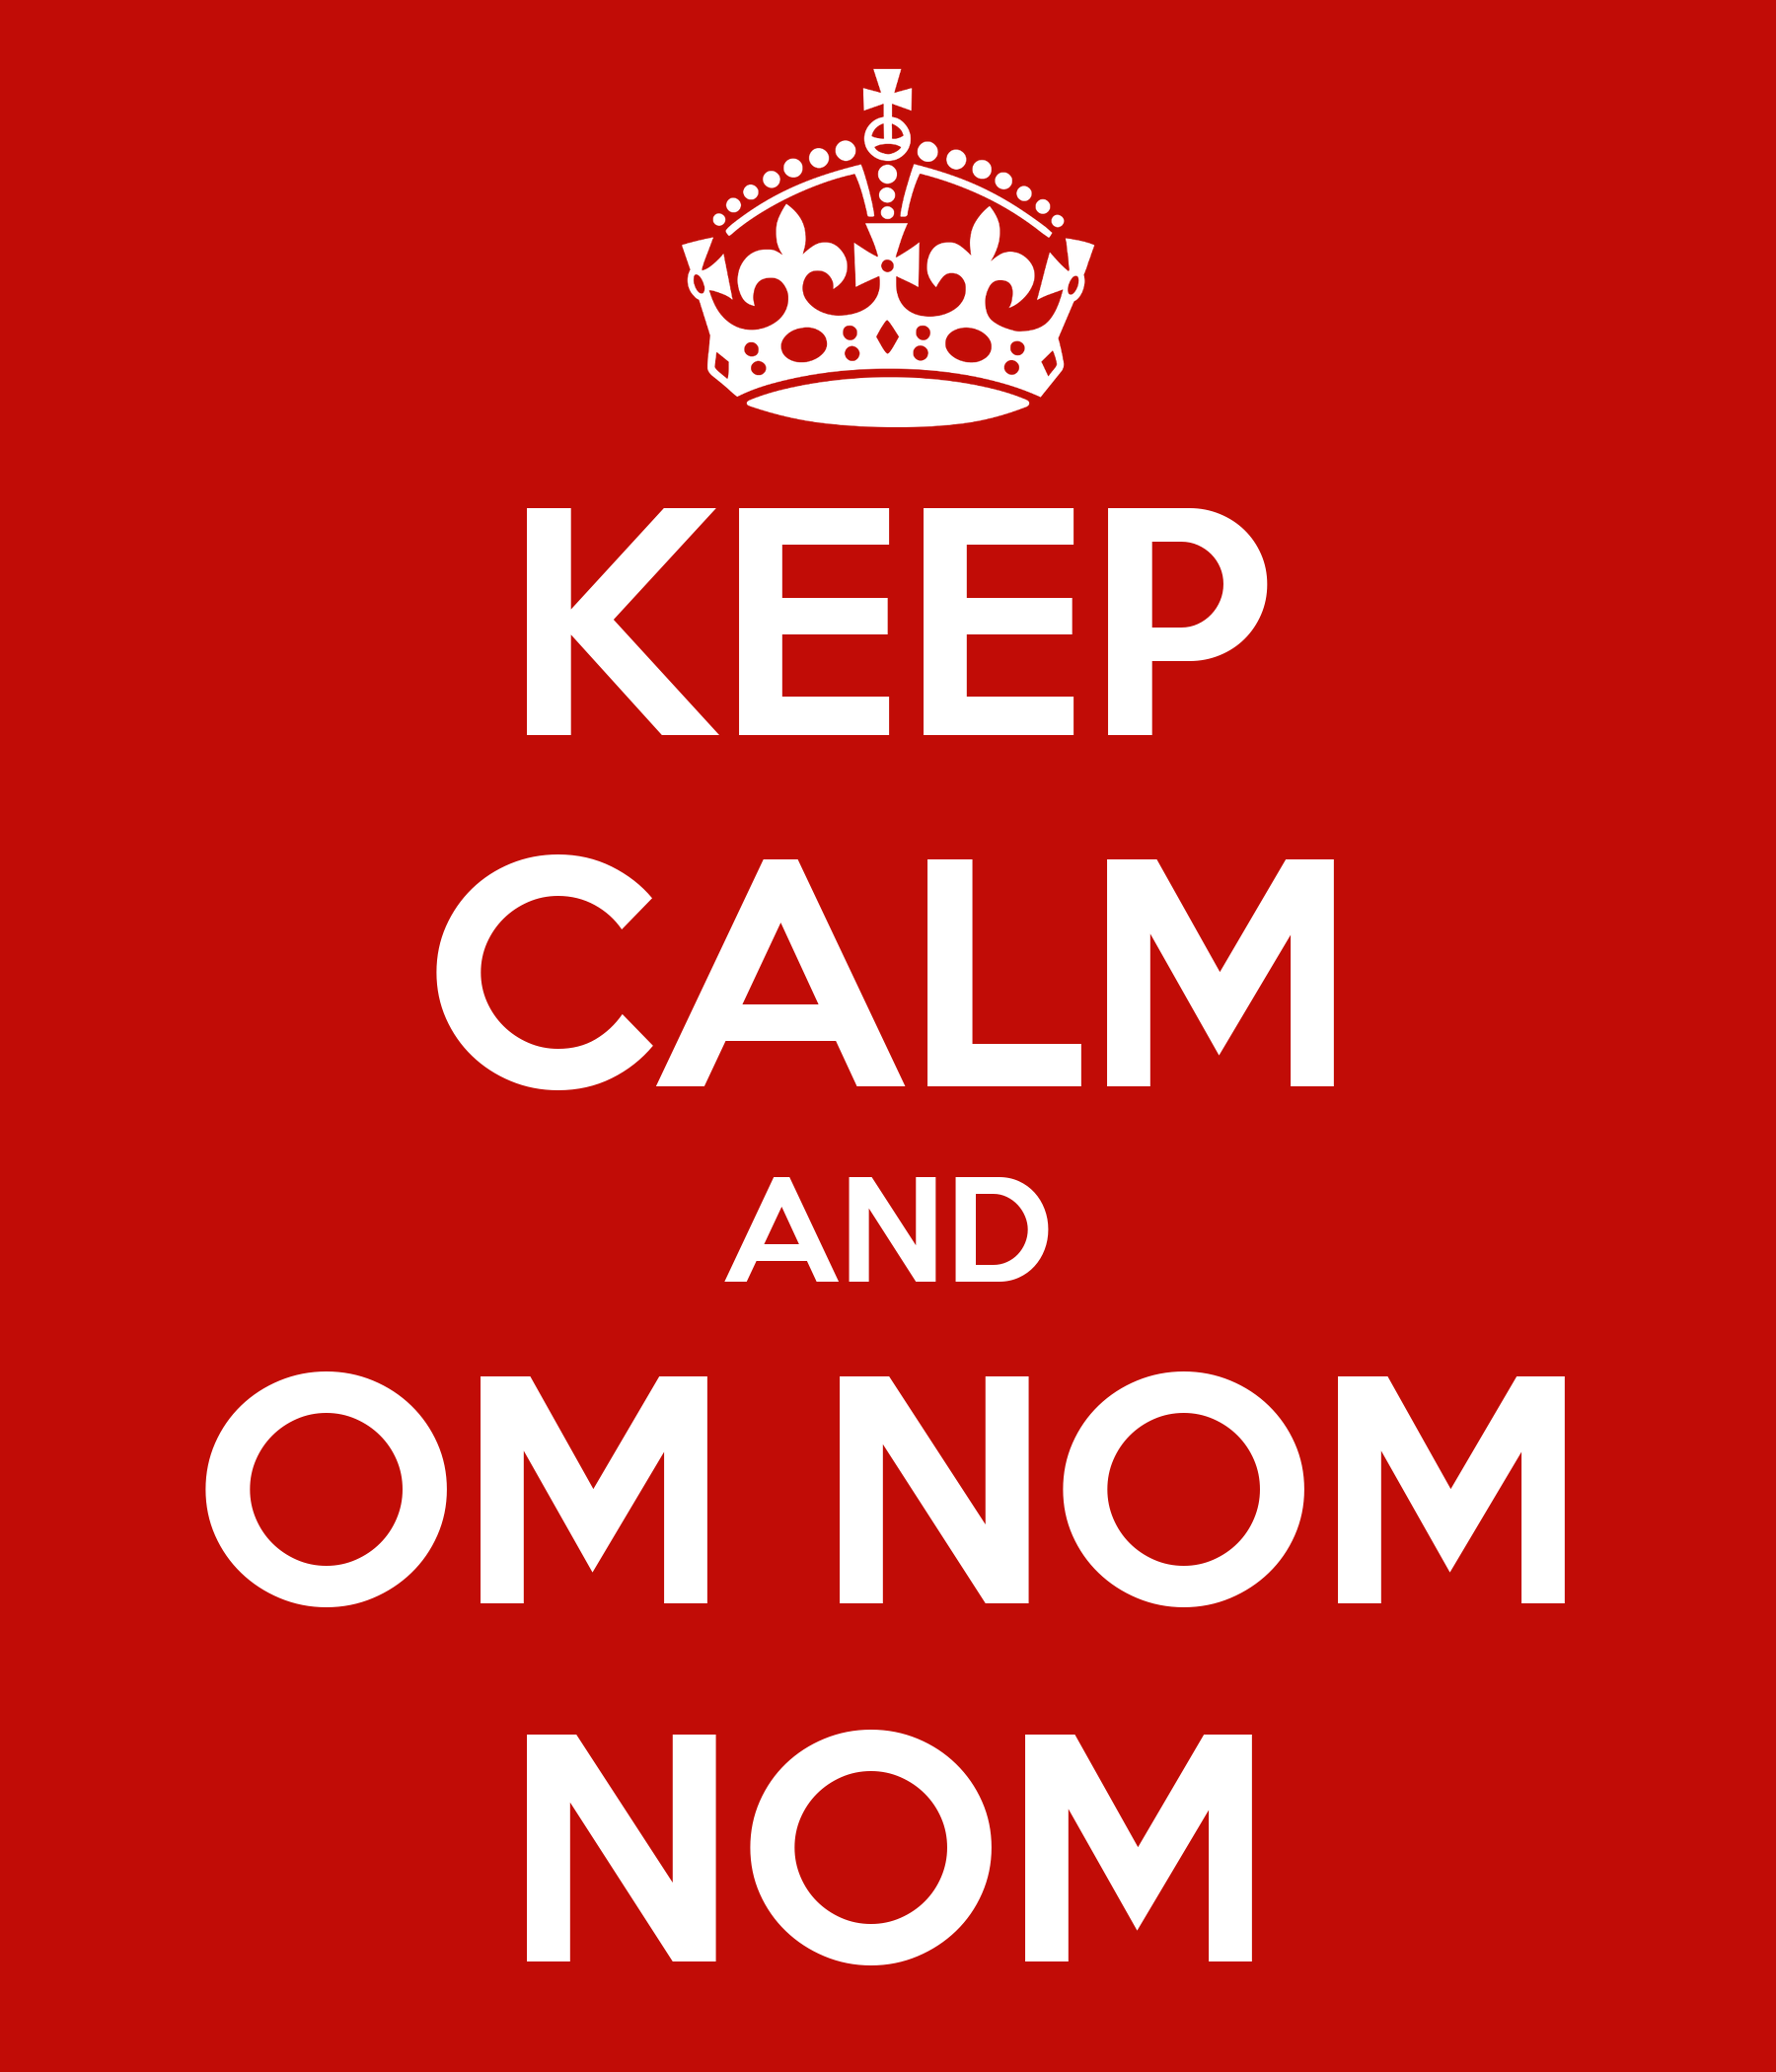 http://sd.keepcalm-o-matic.co.uk/i/keep-calm-and-om-nom-nom-22.png